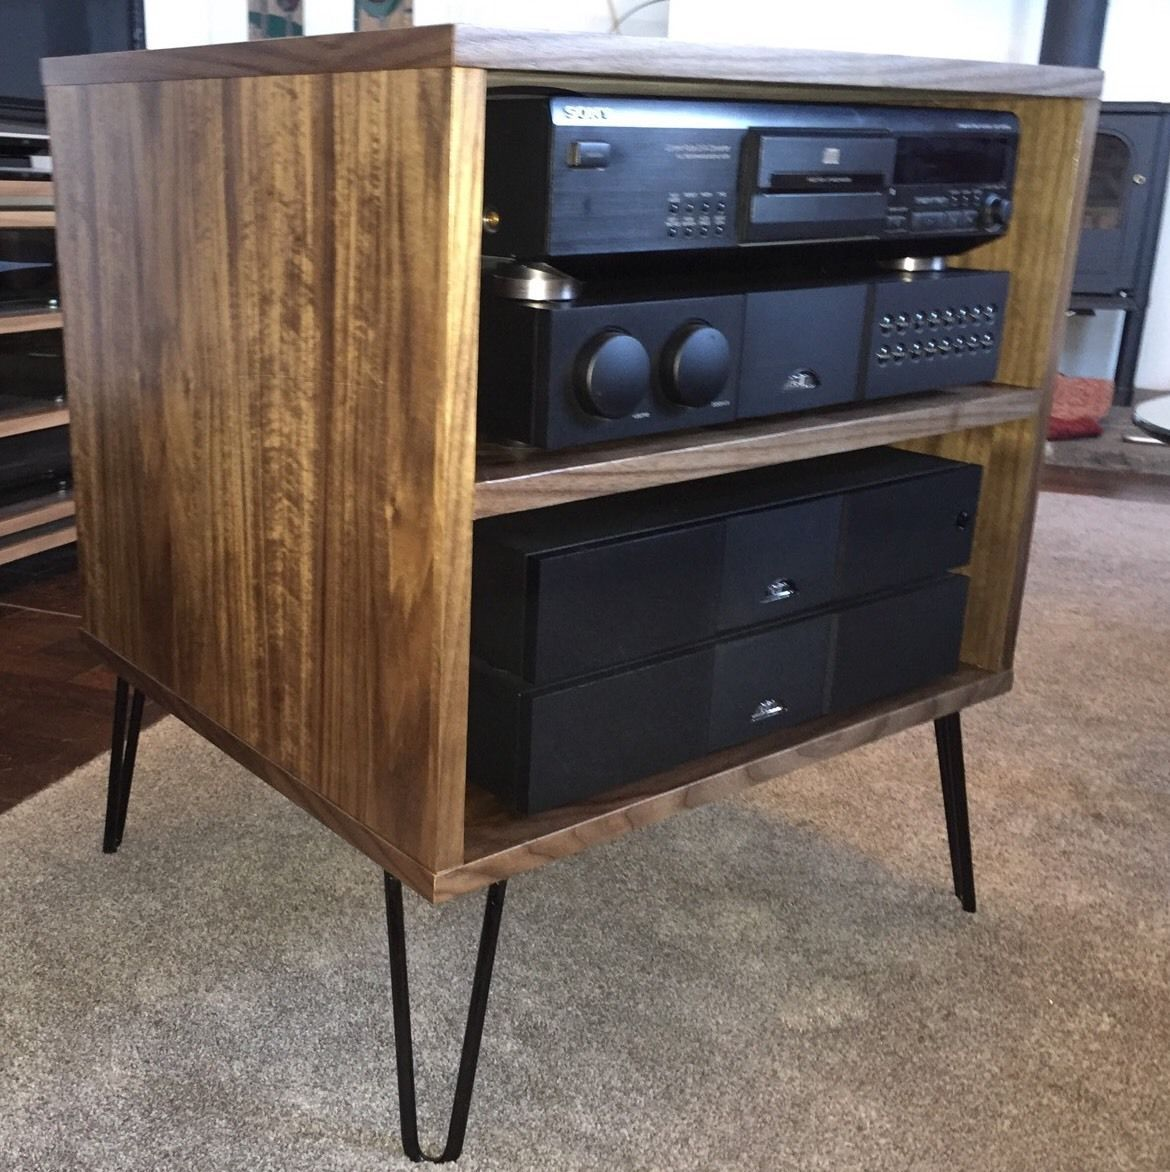 Hifi Rack Abschließbar Walnut Tv Hifi Rack Cabinet Retro Hairpin Legs